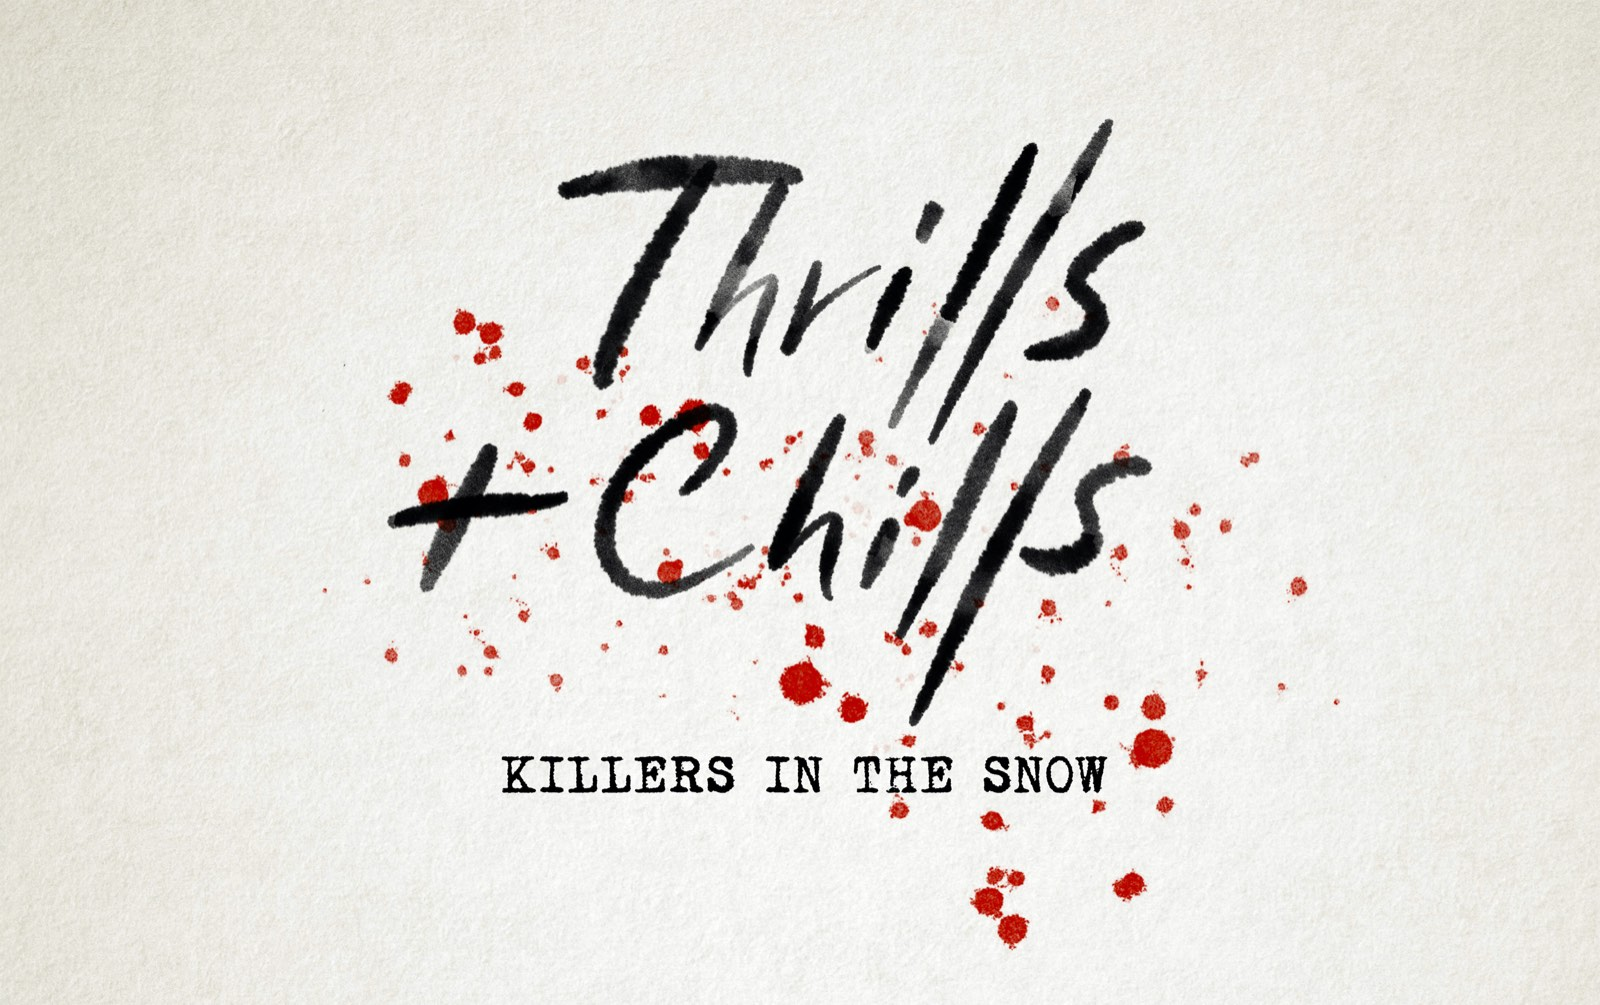 Thrills & Chills: Killers in the Snow